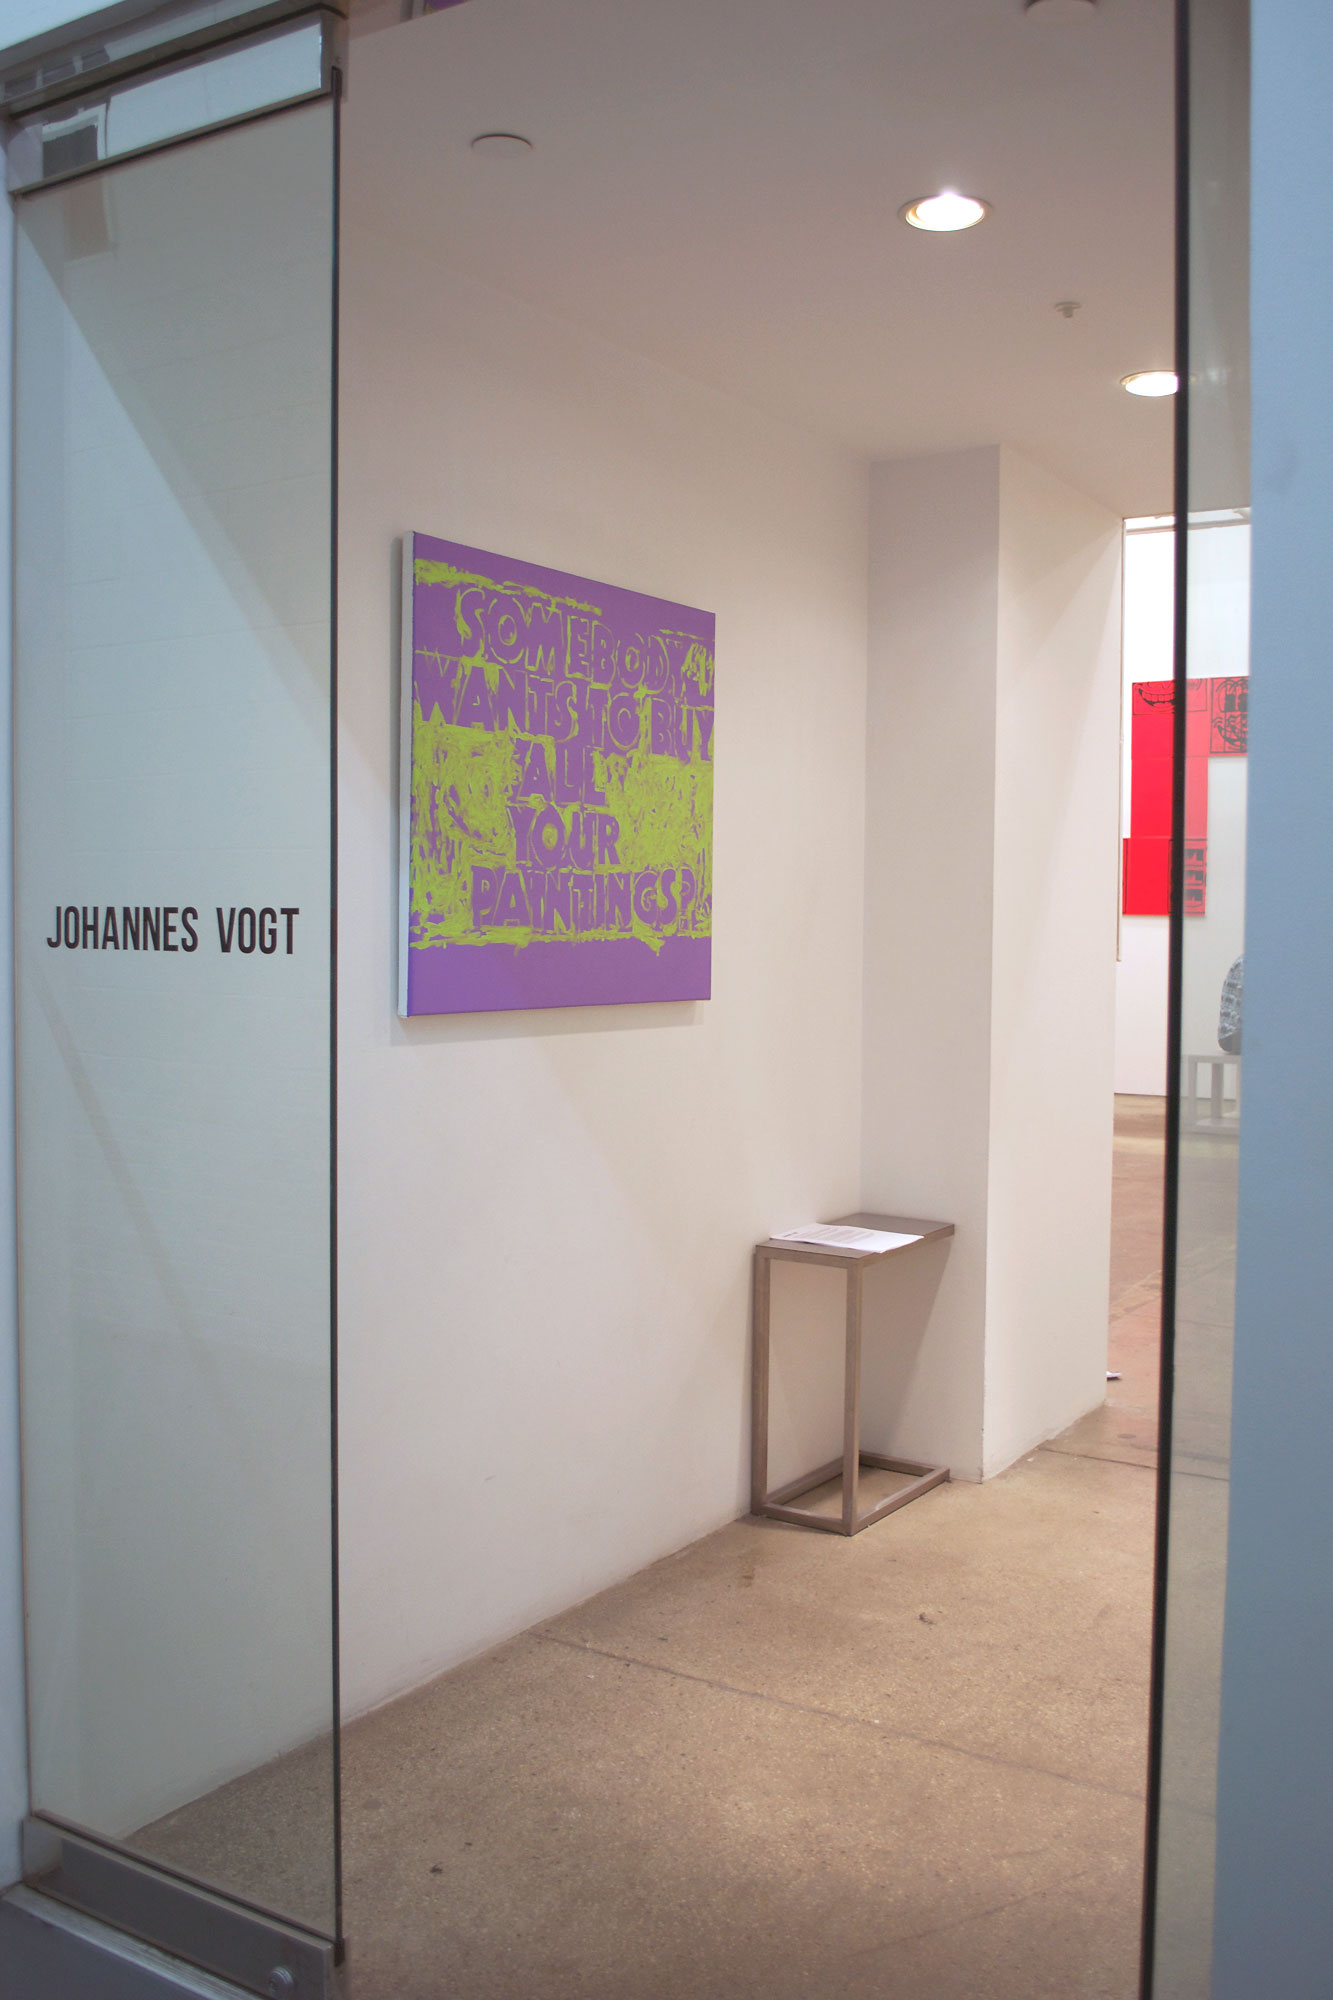 18 Michael Pybus IF IT WORKS, IT'S OBSOLETE @ Johannes Vogt 15 Oct - 14 Nov 2015